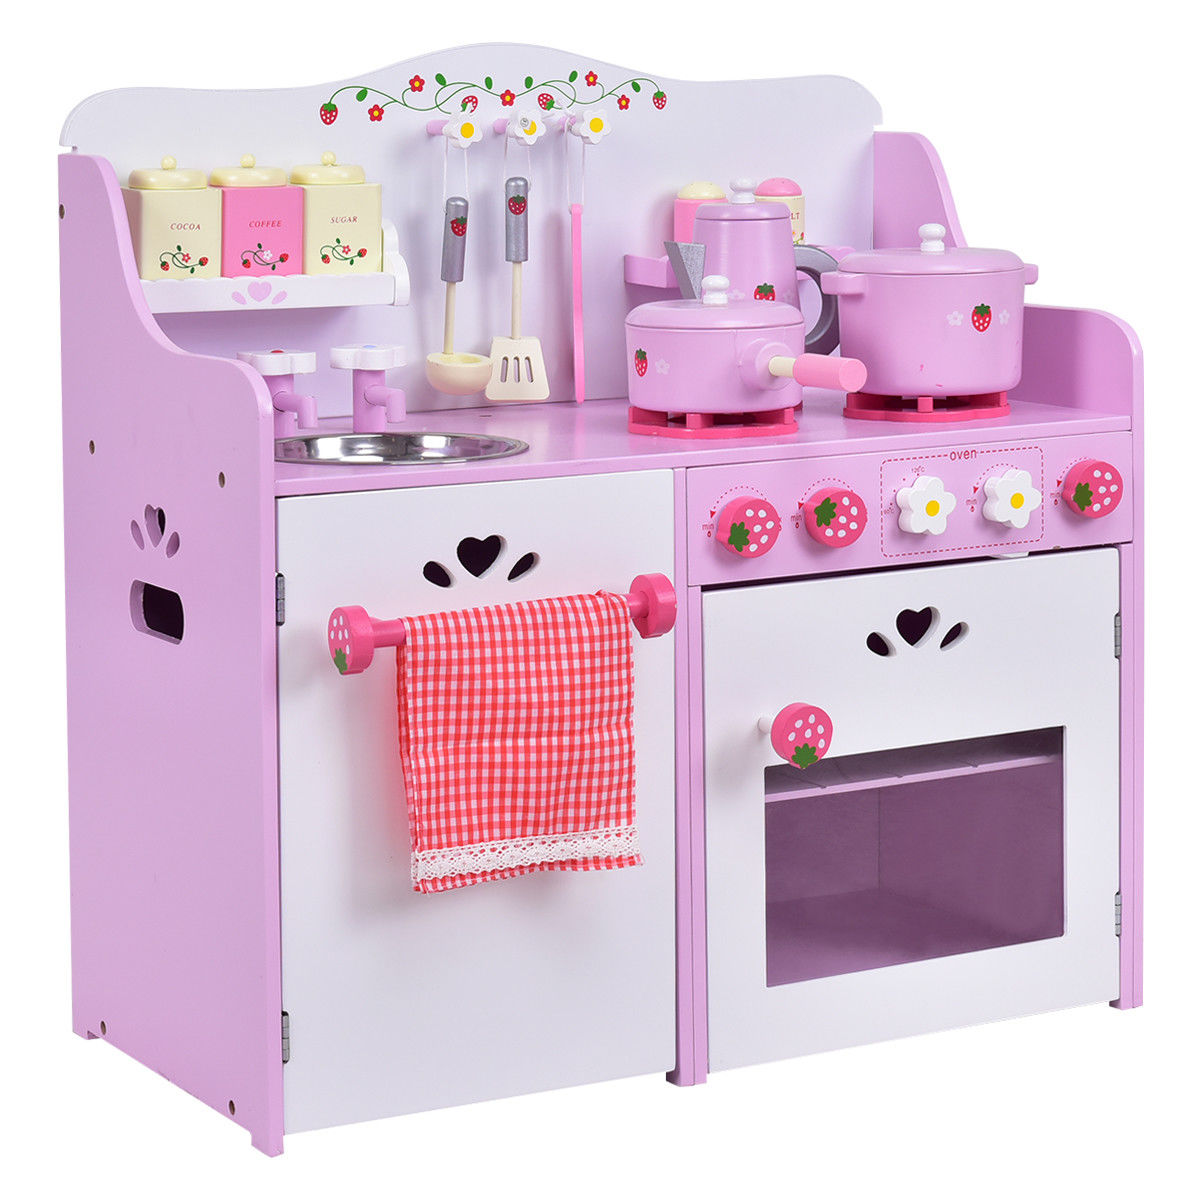 Kids Wooden Kitchen Toy Strawberry Pretend Cooking Playset C139 - Baby World Inc